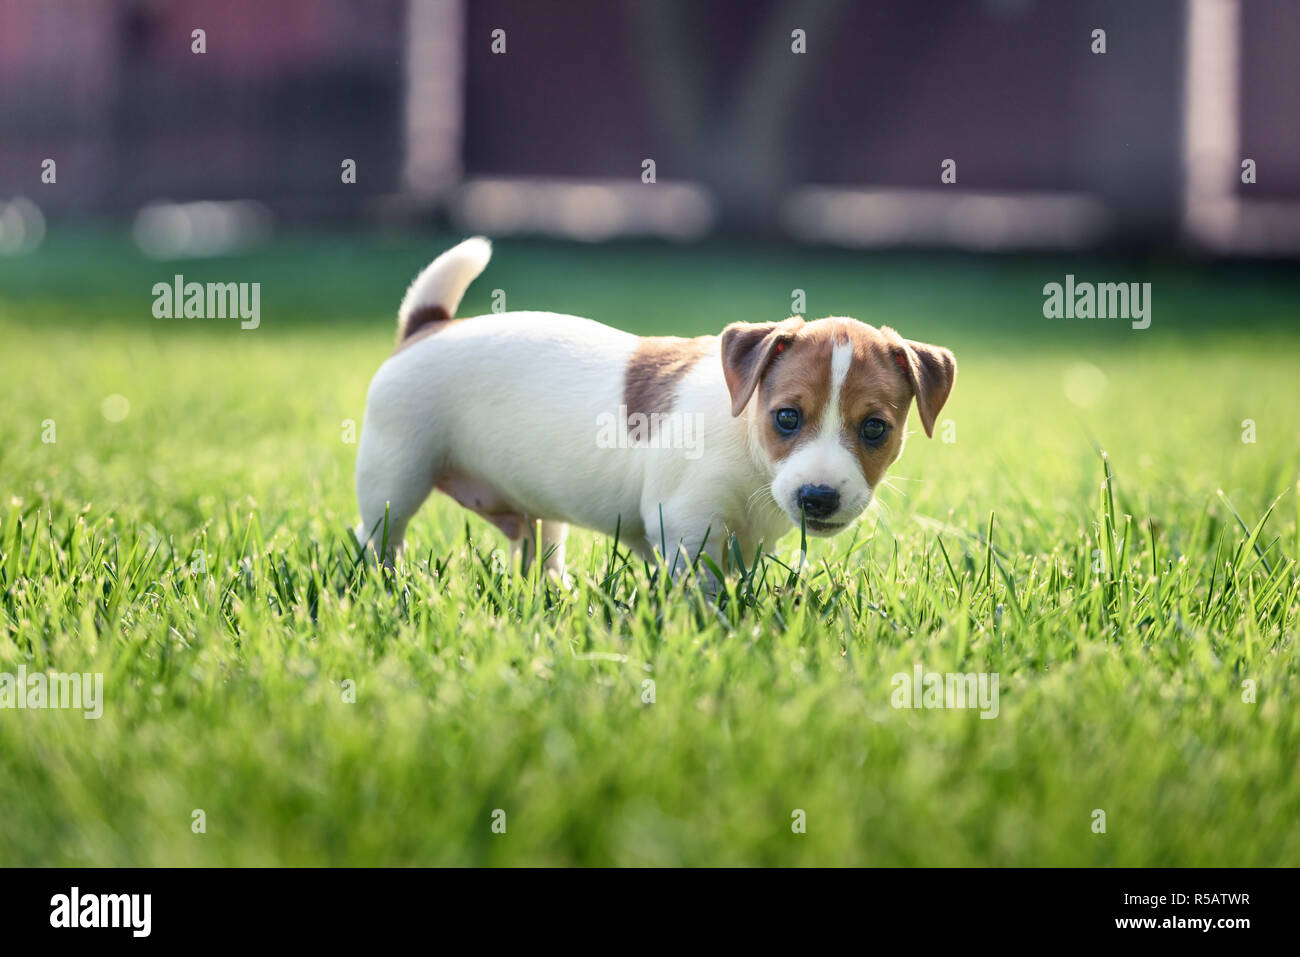 Jack russel terrier puppy on green lawn. Happy dog with serious gaze - Stock Image